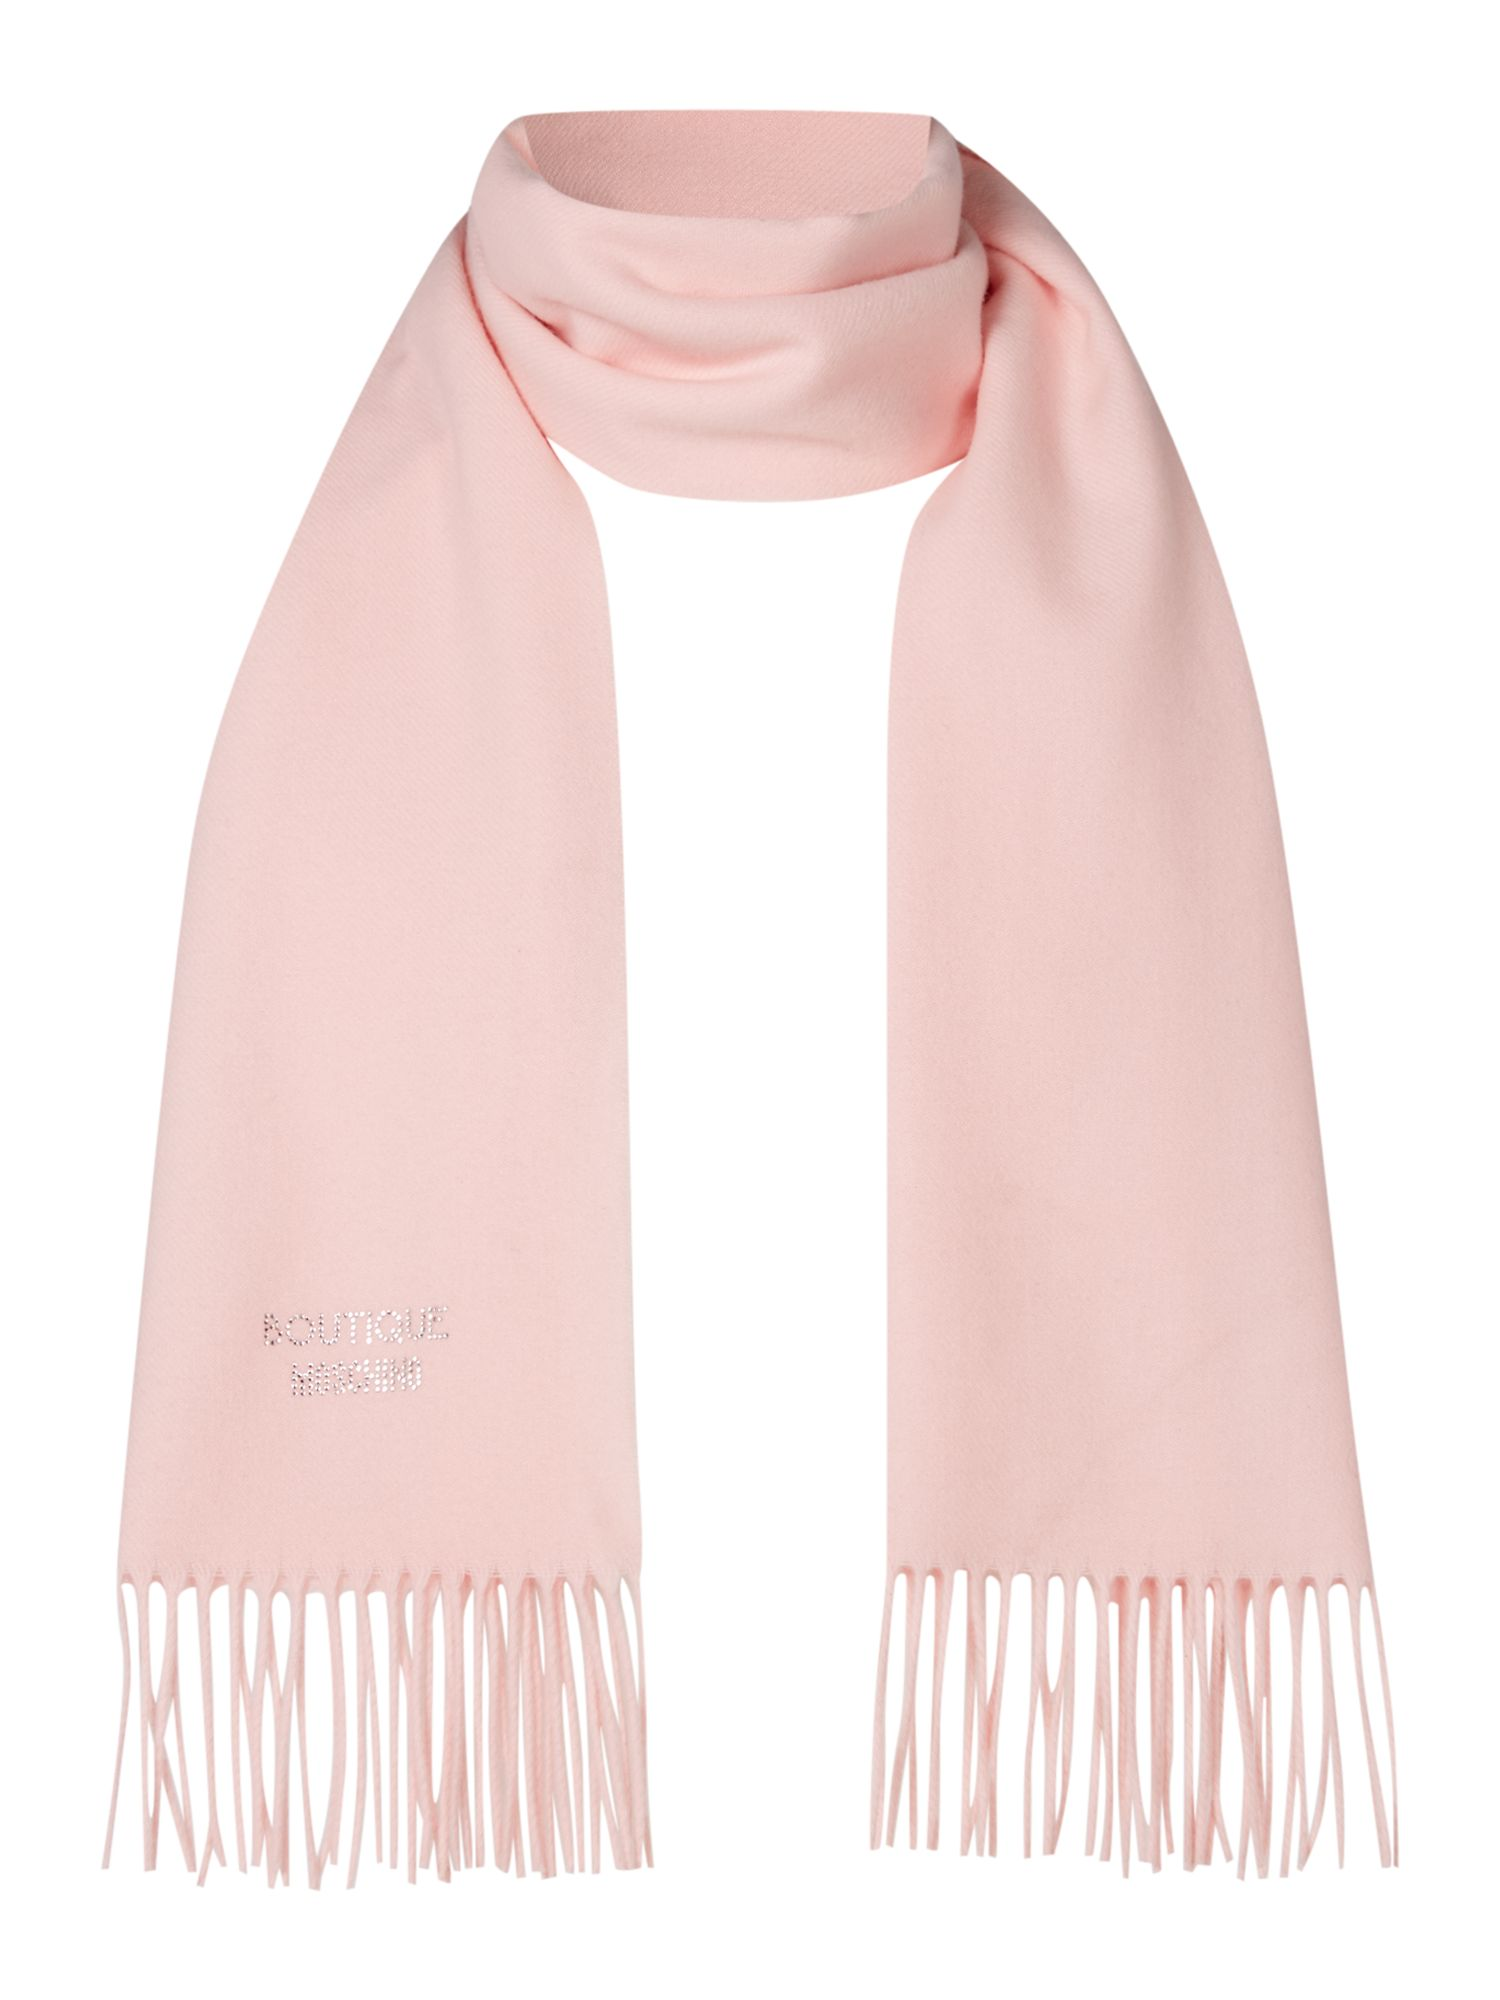 Boutique Moschino Boutique Moschino Diamante logo scarf, Light Pink